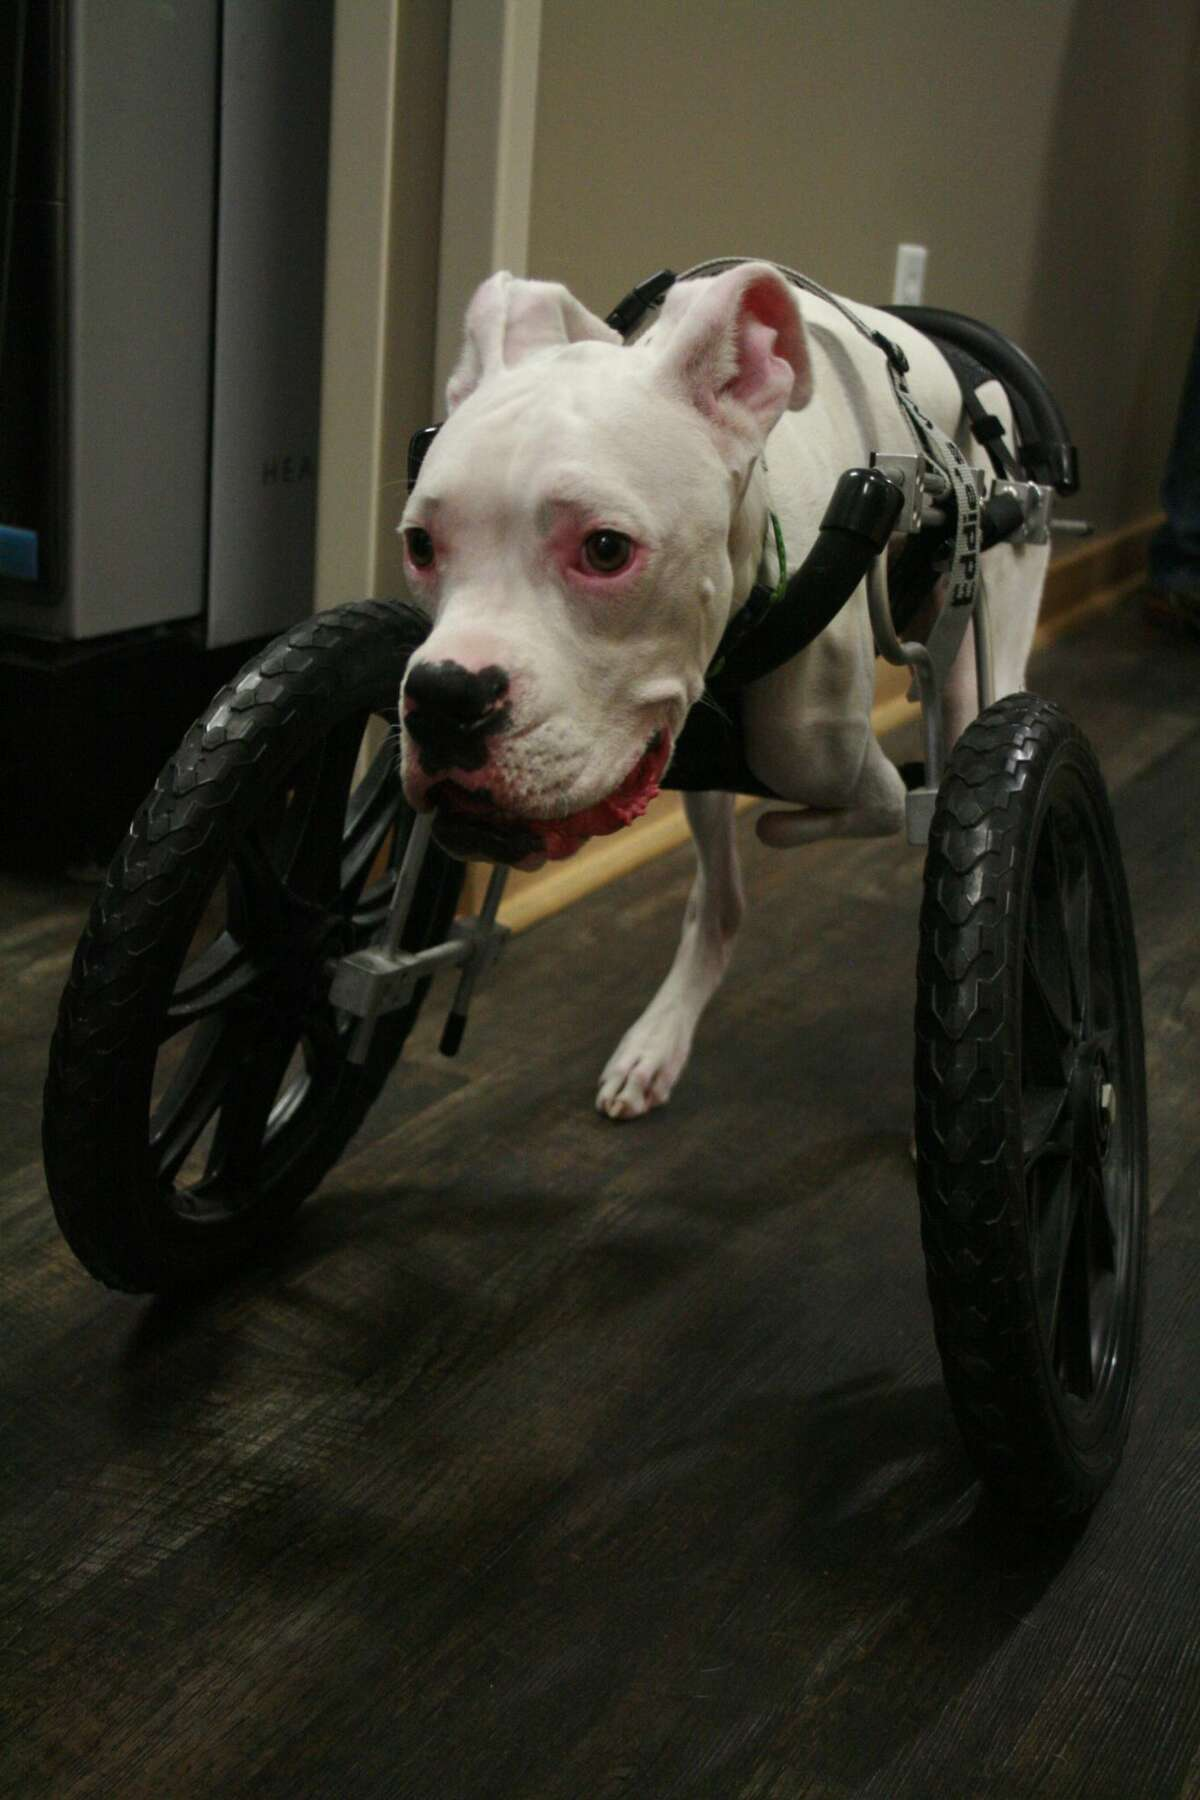 Nubby, a white boxer pup, was born without front legs due to a congenital defect. He is learning to walk with the use of prosthetic wheels.